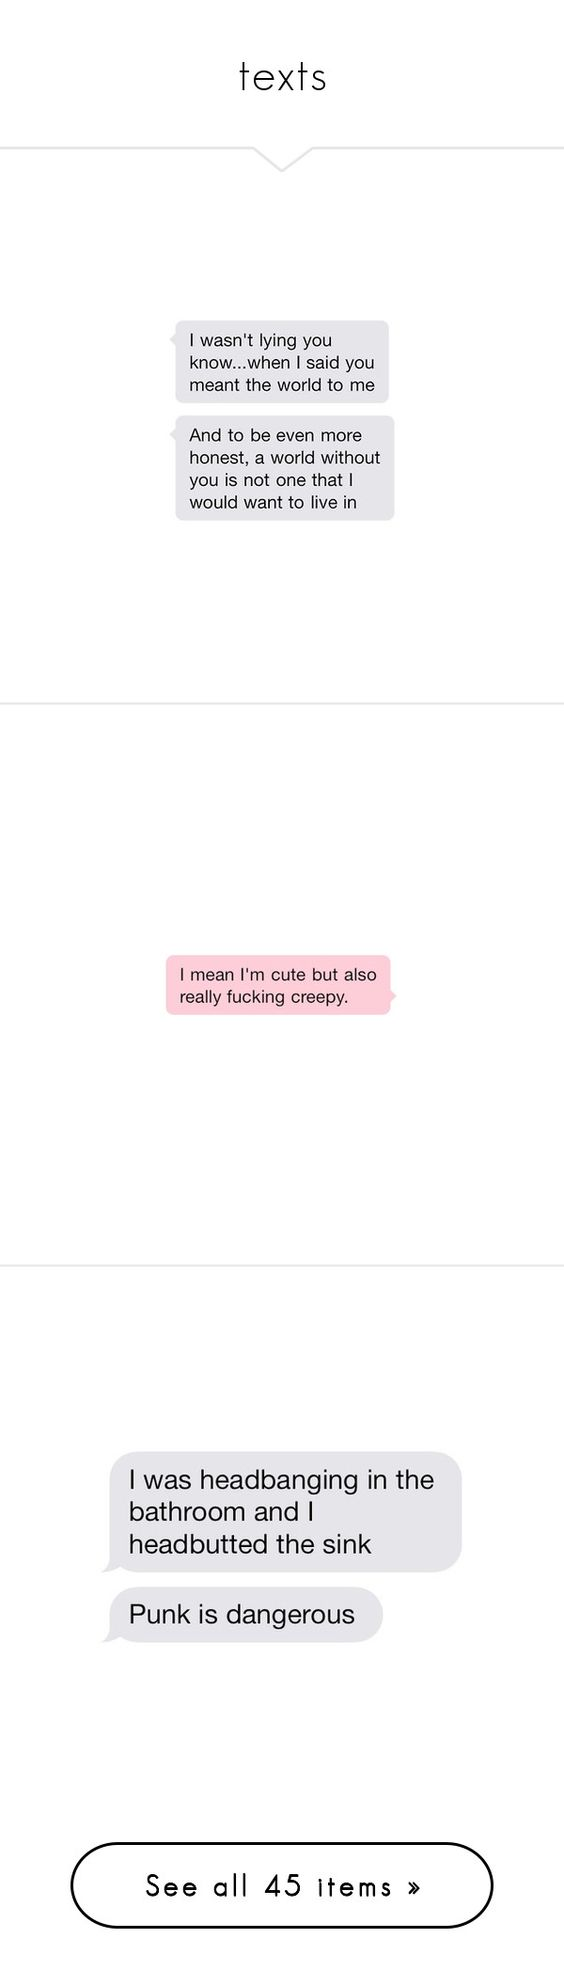 """""""texts"""" by red-rose-petals ❤ liked on Polyvore featuring fillers, text, words, quotes, text messages, backgrounds, magazine, phrase, saying and scribble"""